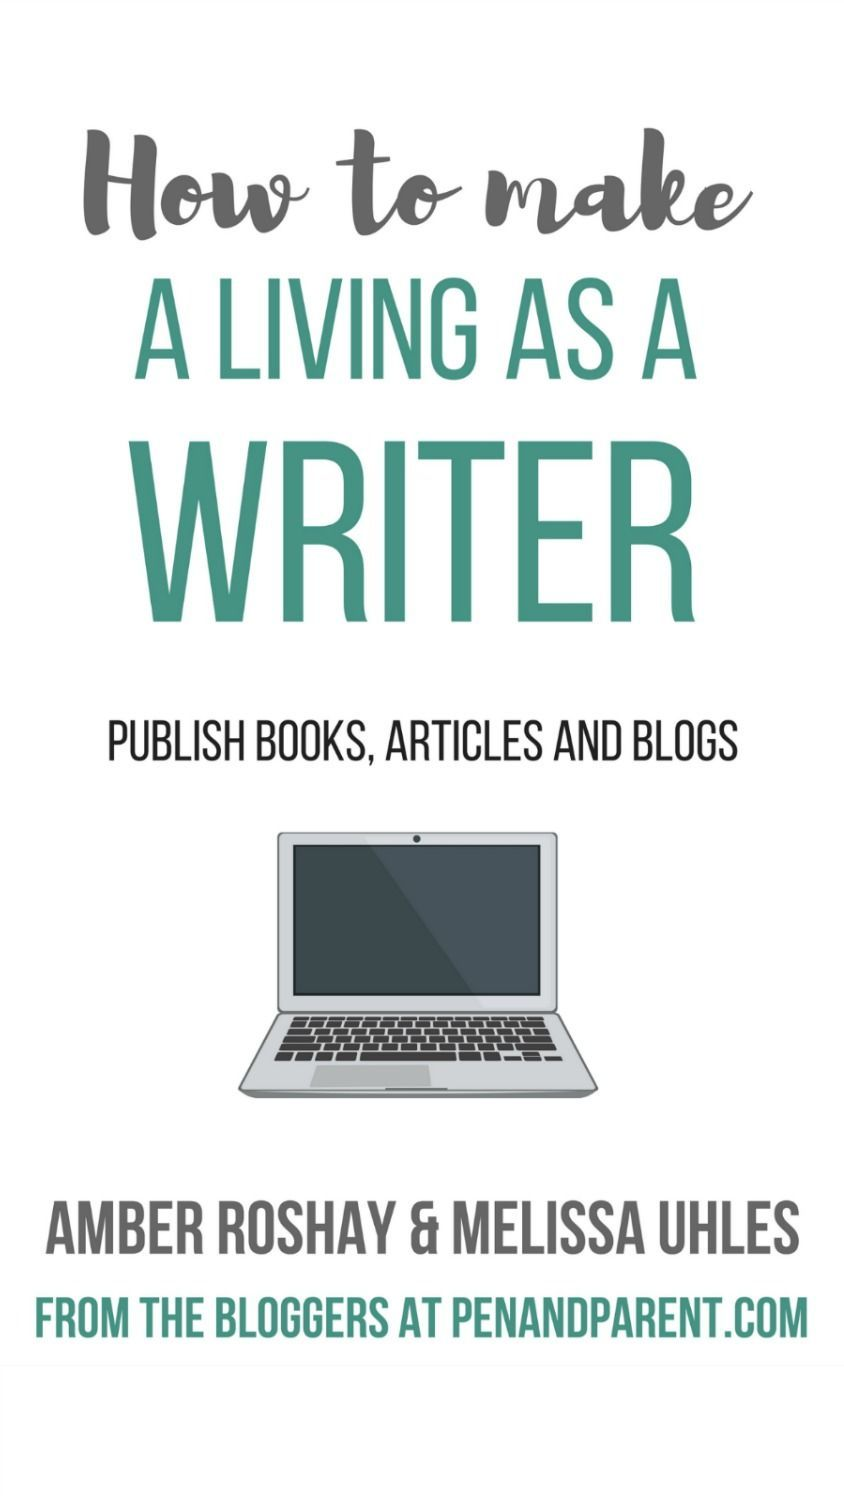 How to become an author of articles